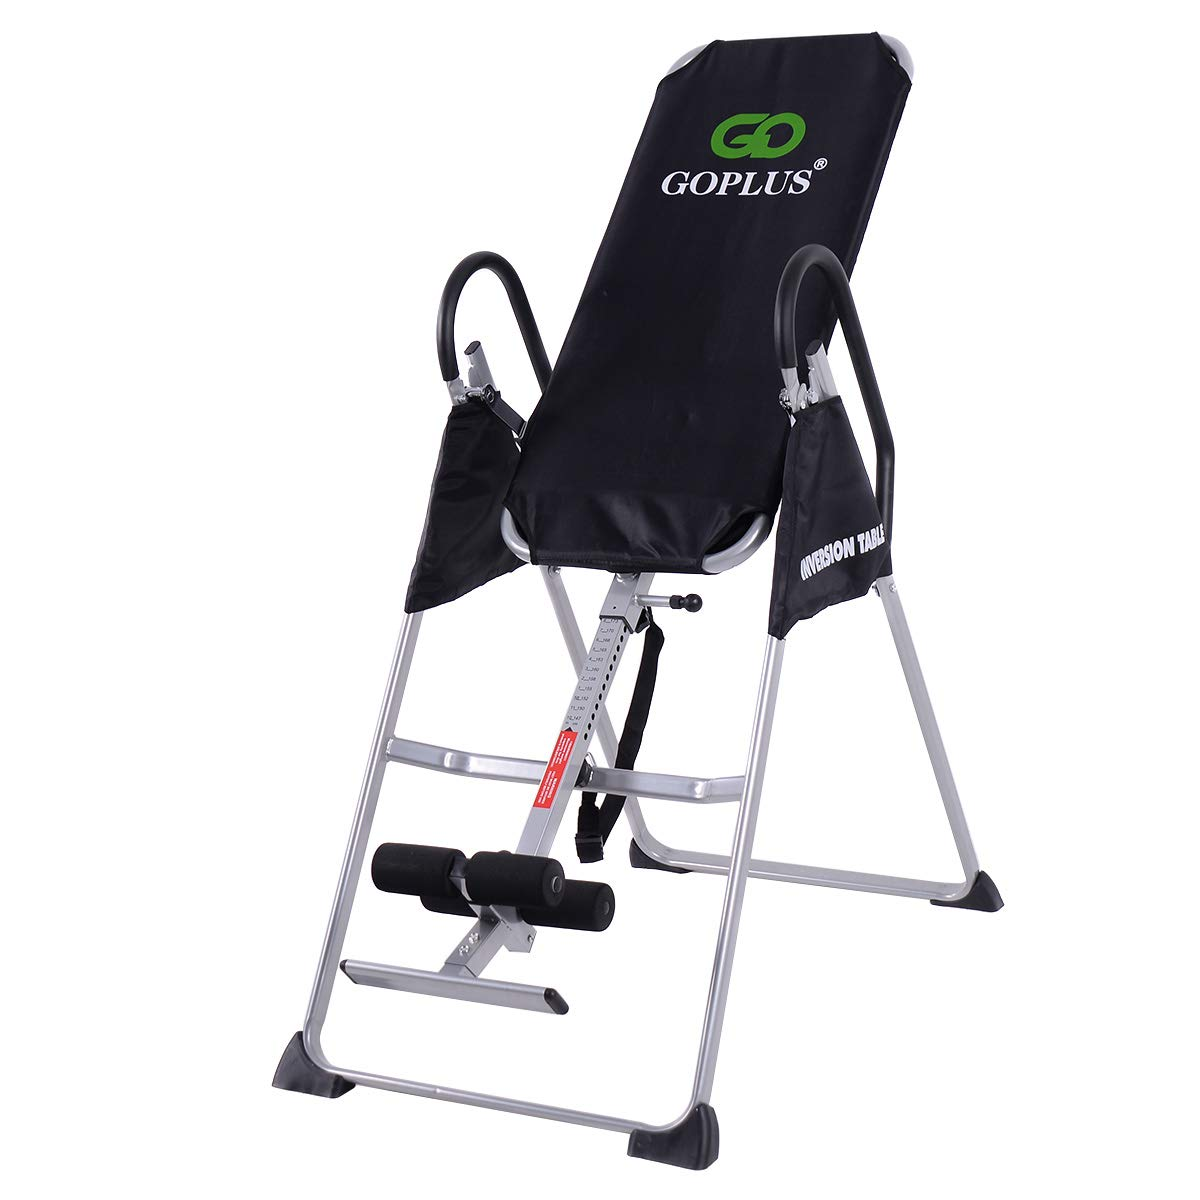 Gyamx Inversion Table, Gravity Adjustable Folding Therapy Back Stretching Machine for Back Pain